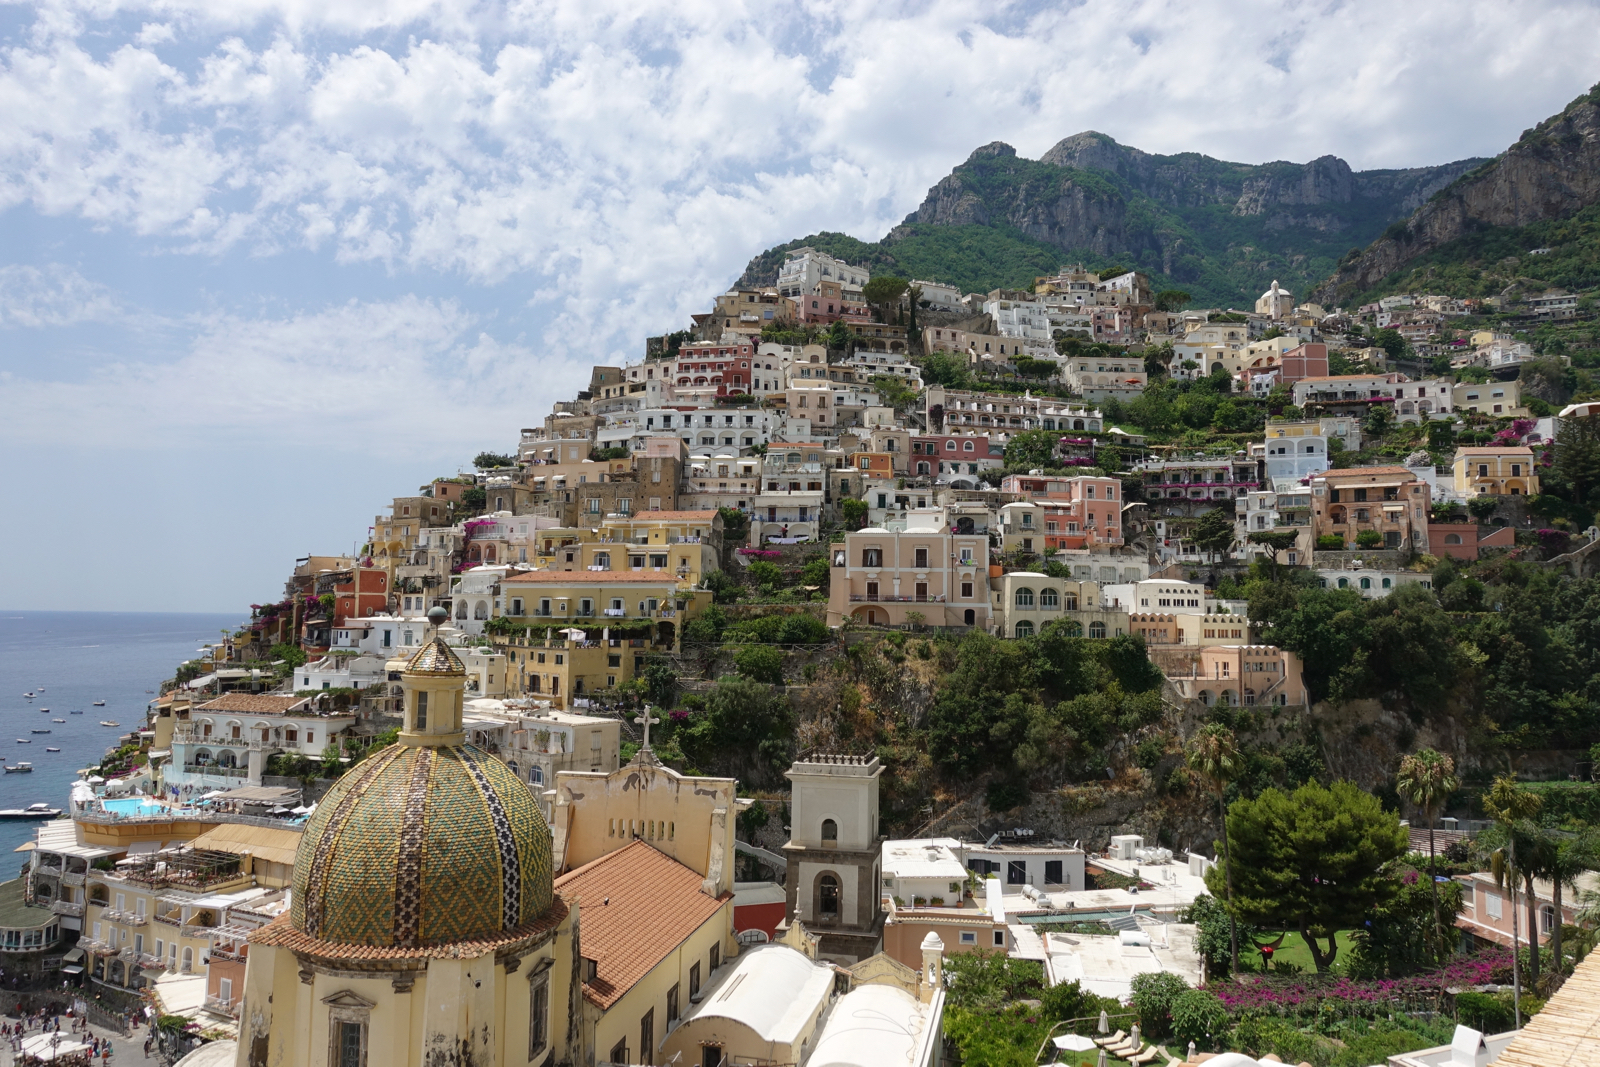 Le Sirenuse, Italy, Positano, Travel Guide in Italy, Amalfi Coast, Best Views in the world